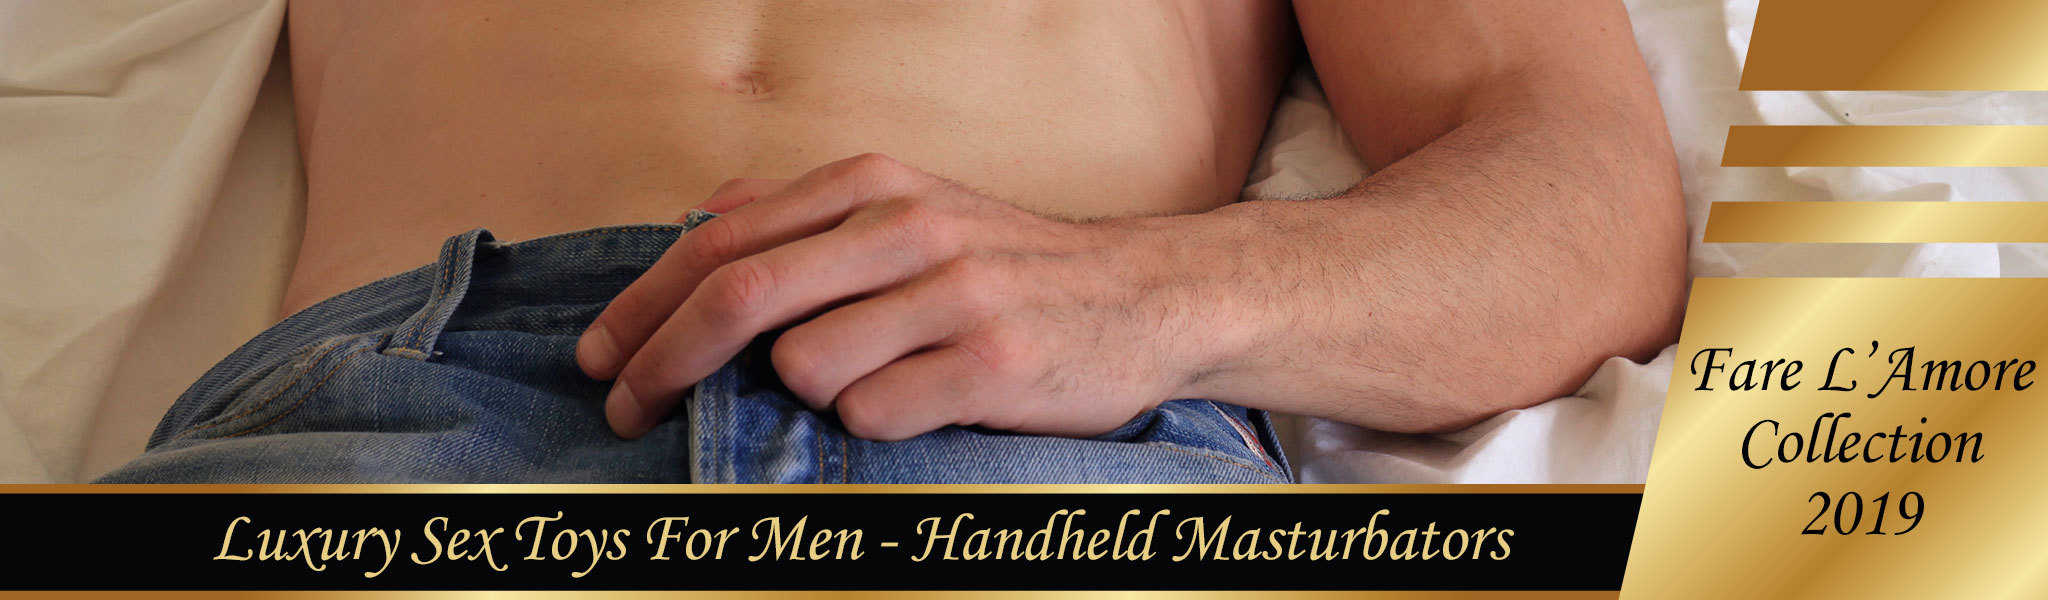 Handheld Masturbators | Sex Toys For Men